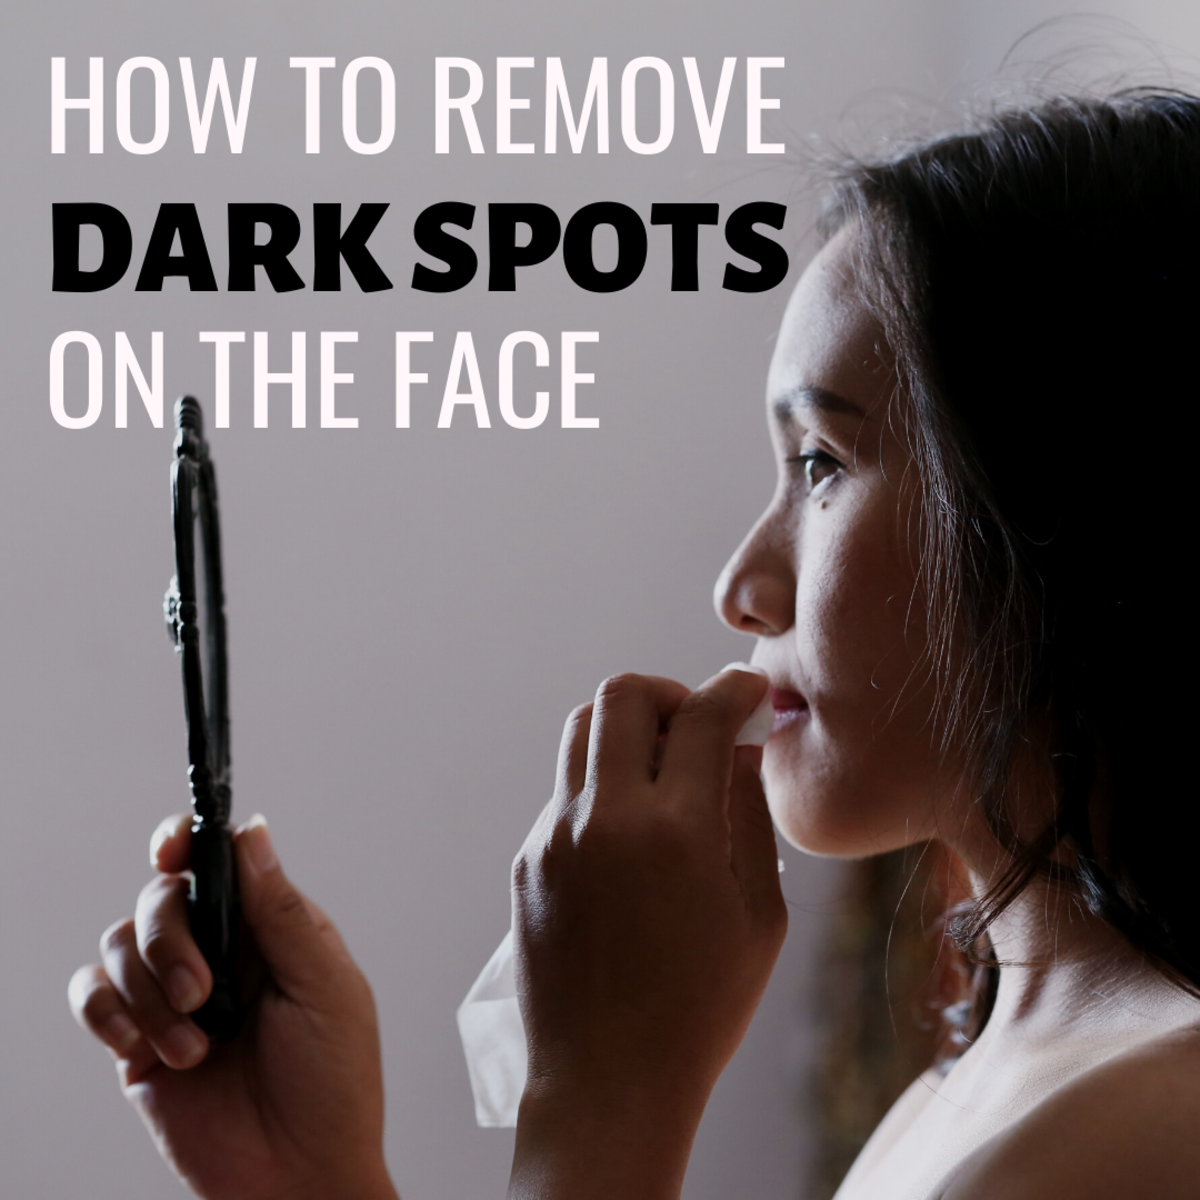 How to Remove Dark Patches and Spots From Your Face